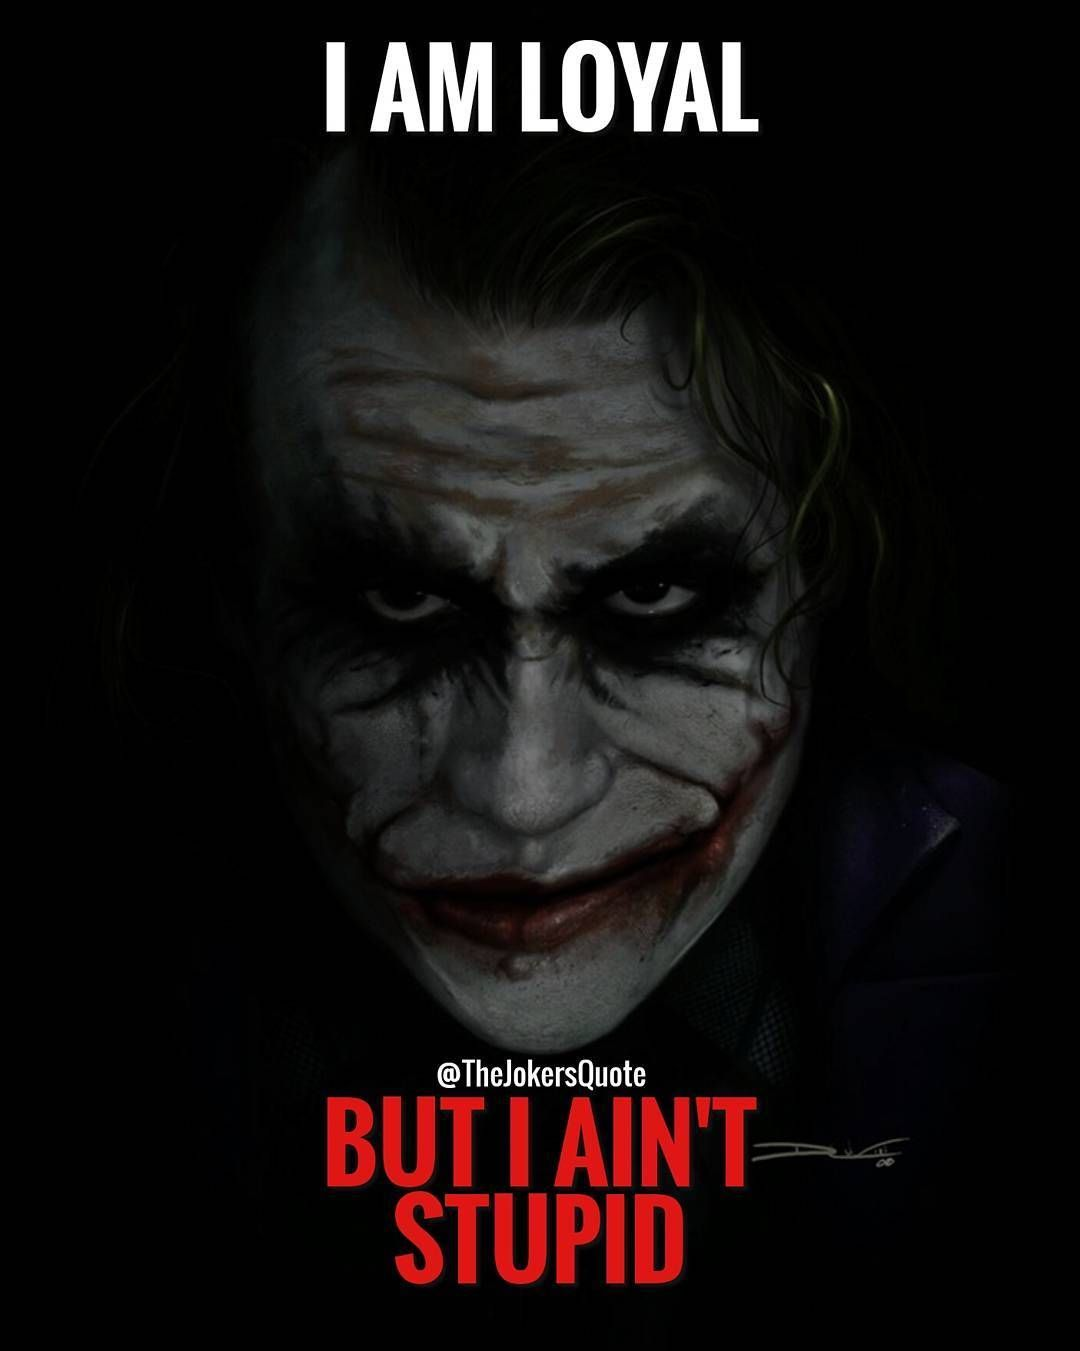 967 Likes, 3 Comments Joker Quotes (thejokersquote) on